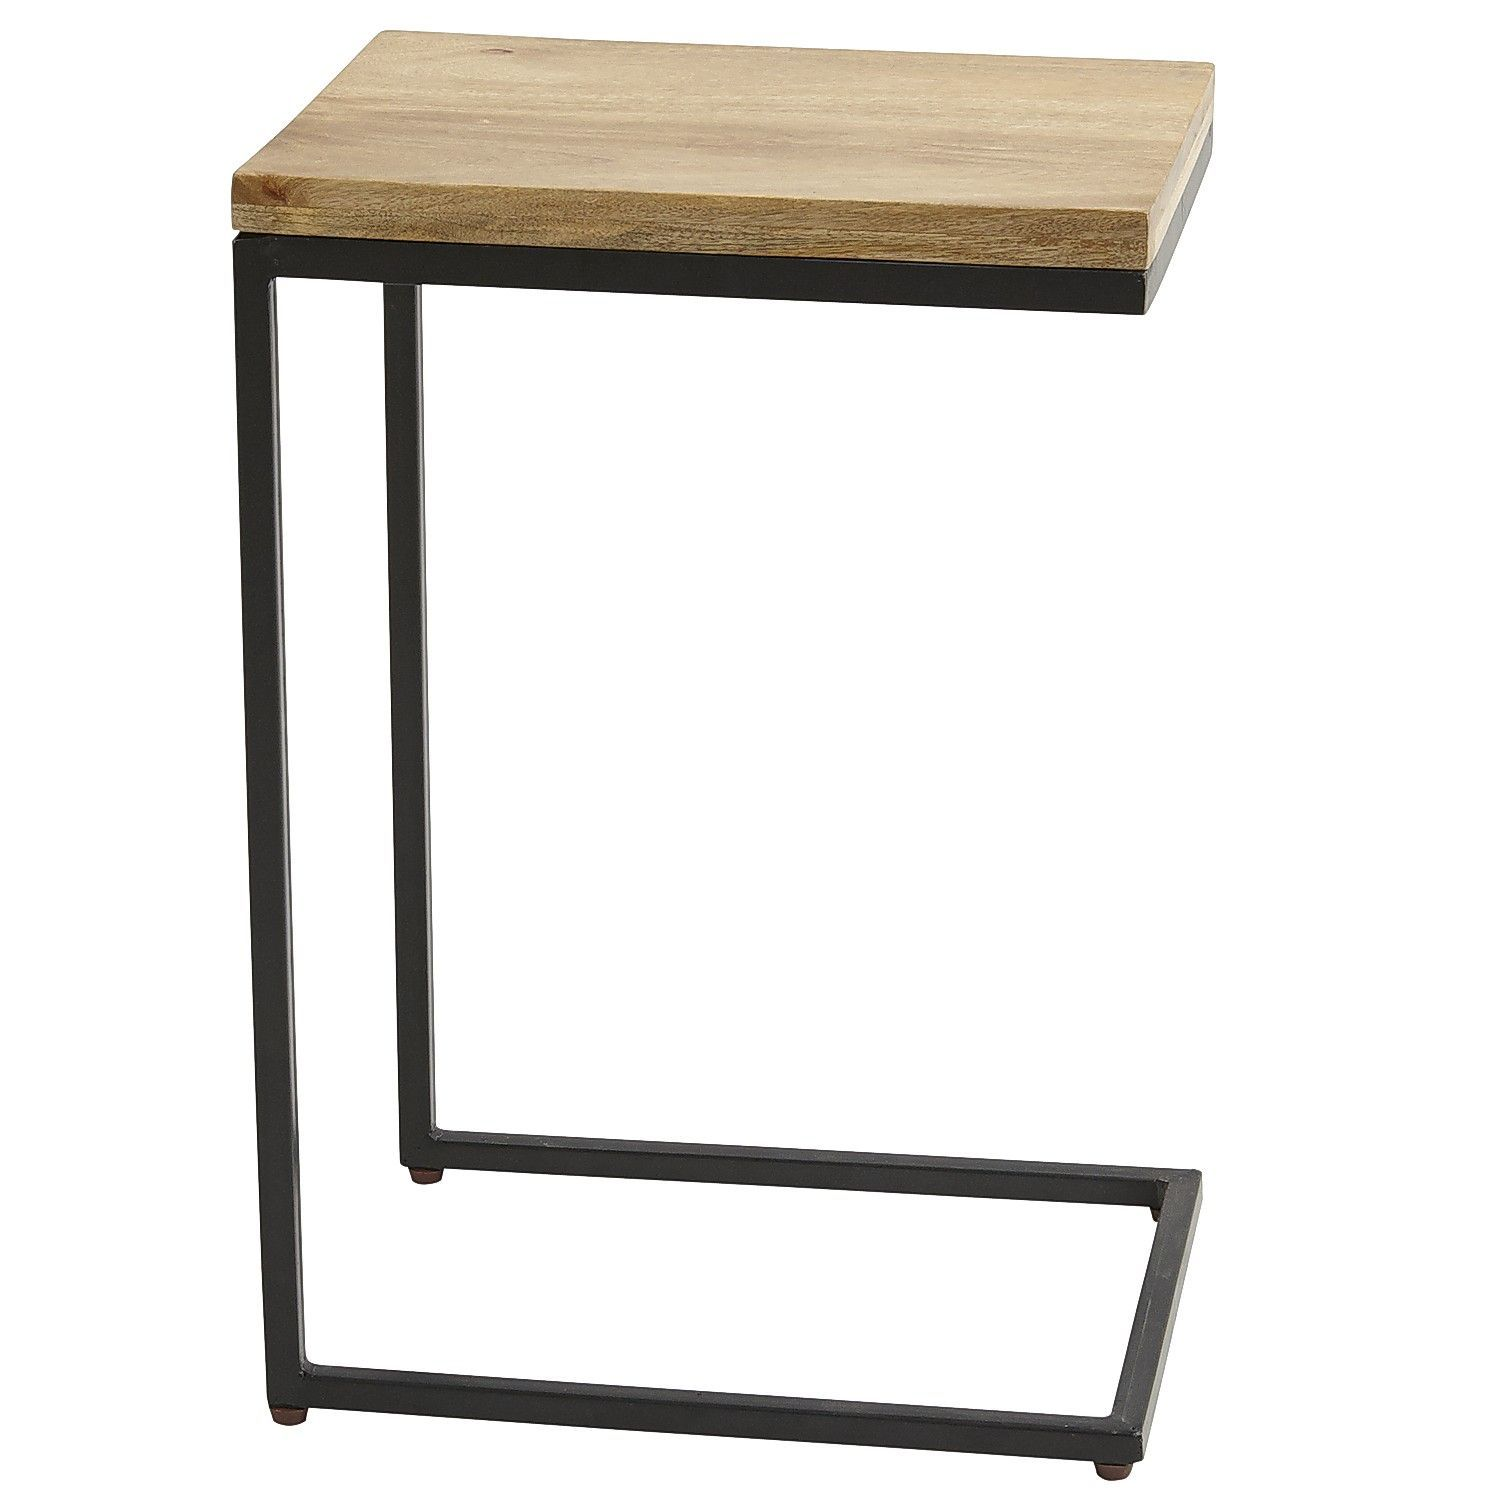 Takat C Table Natural